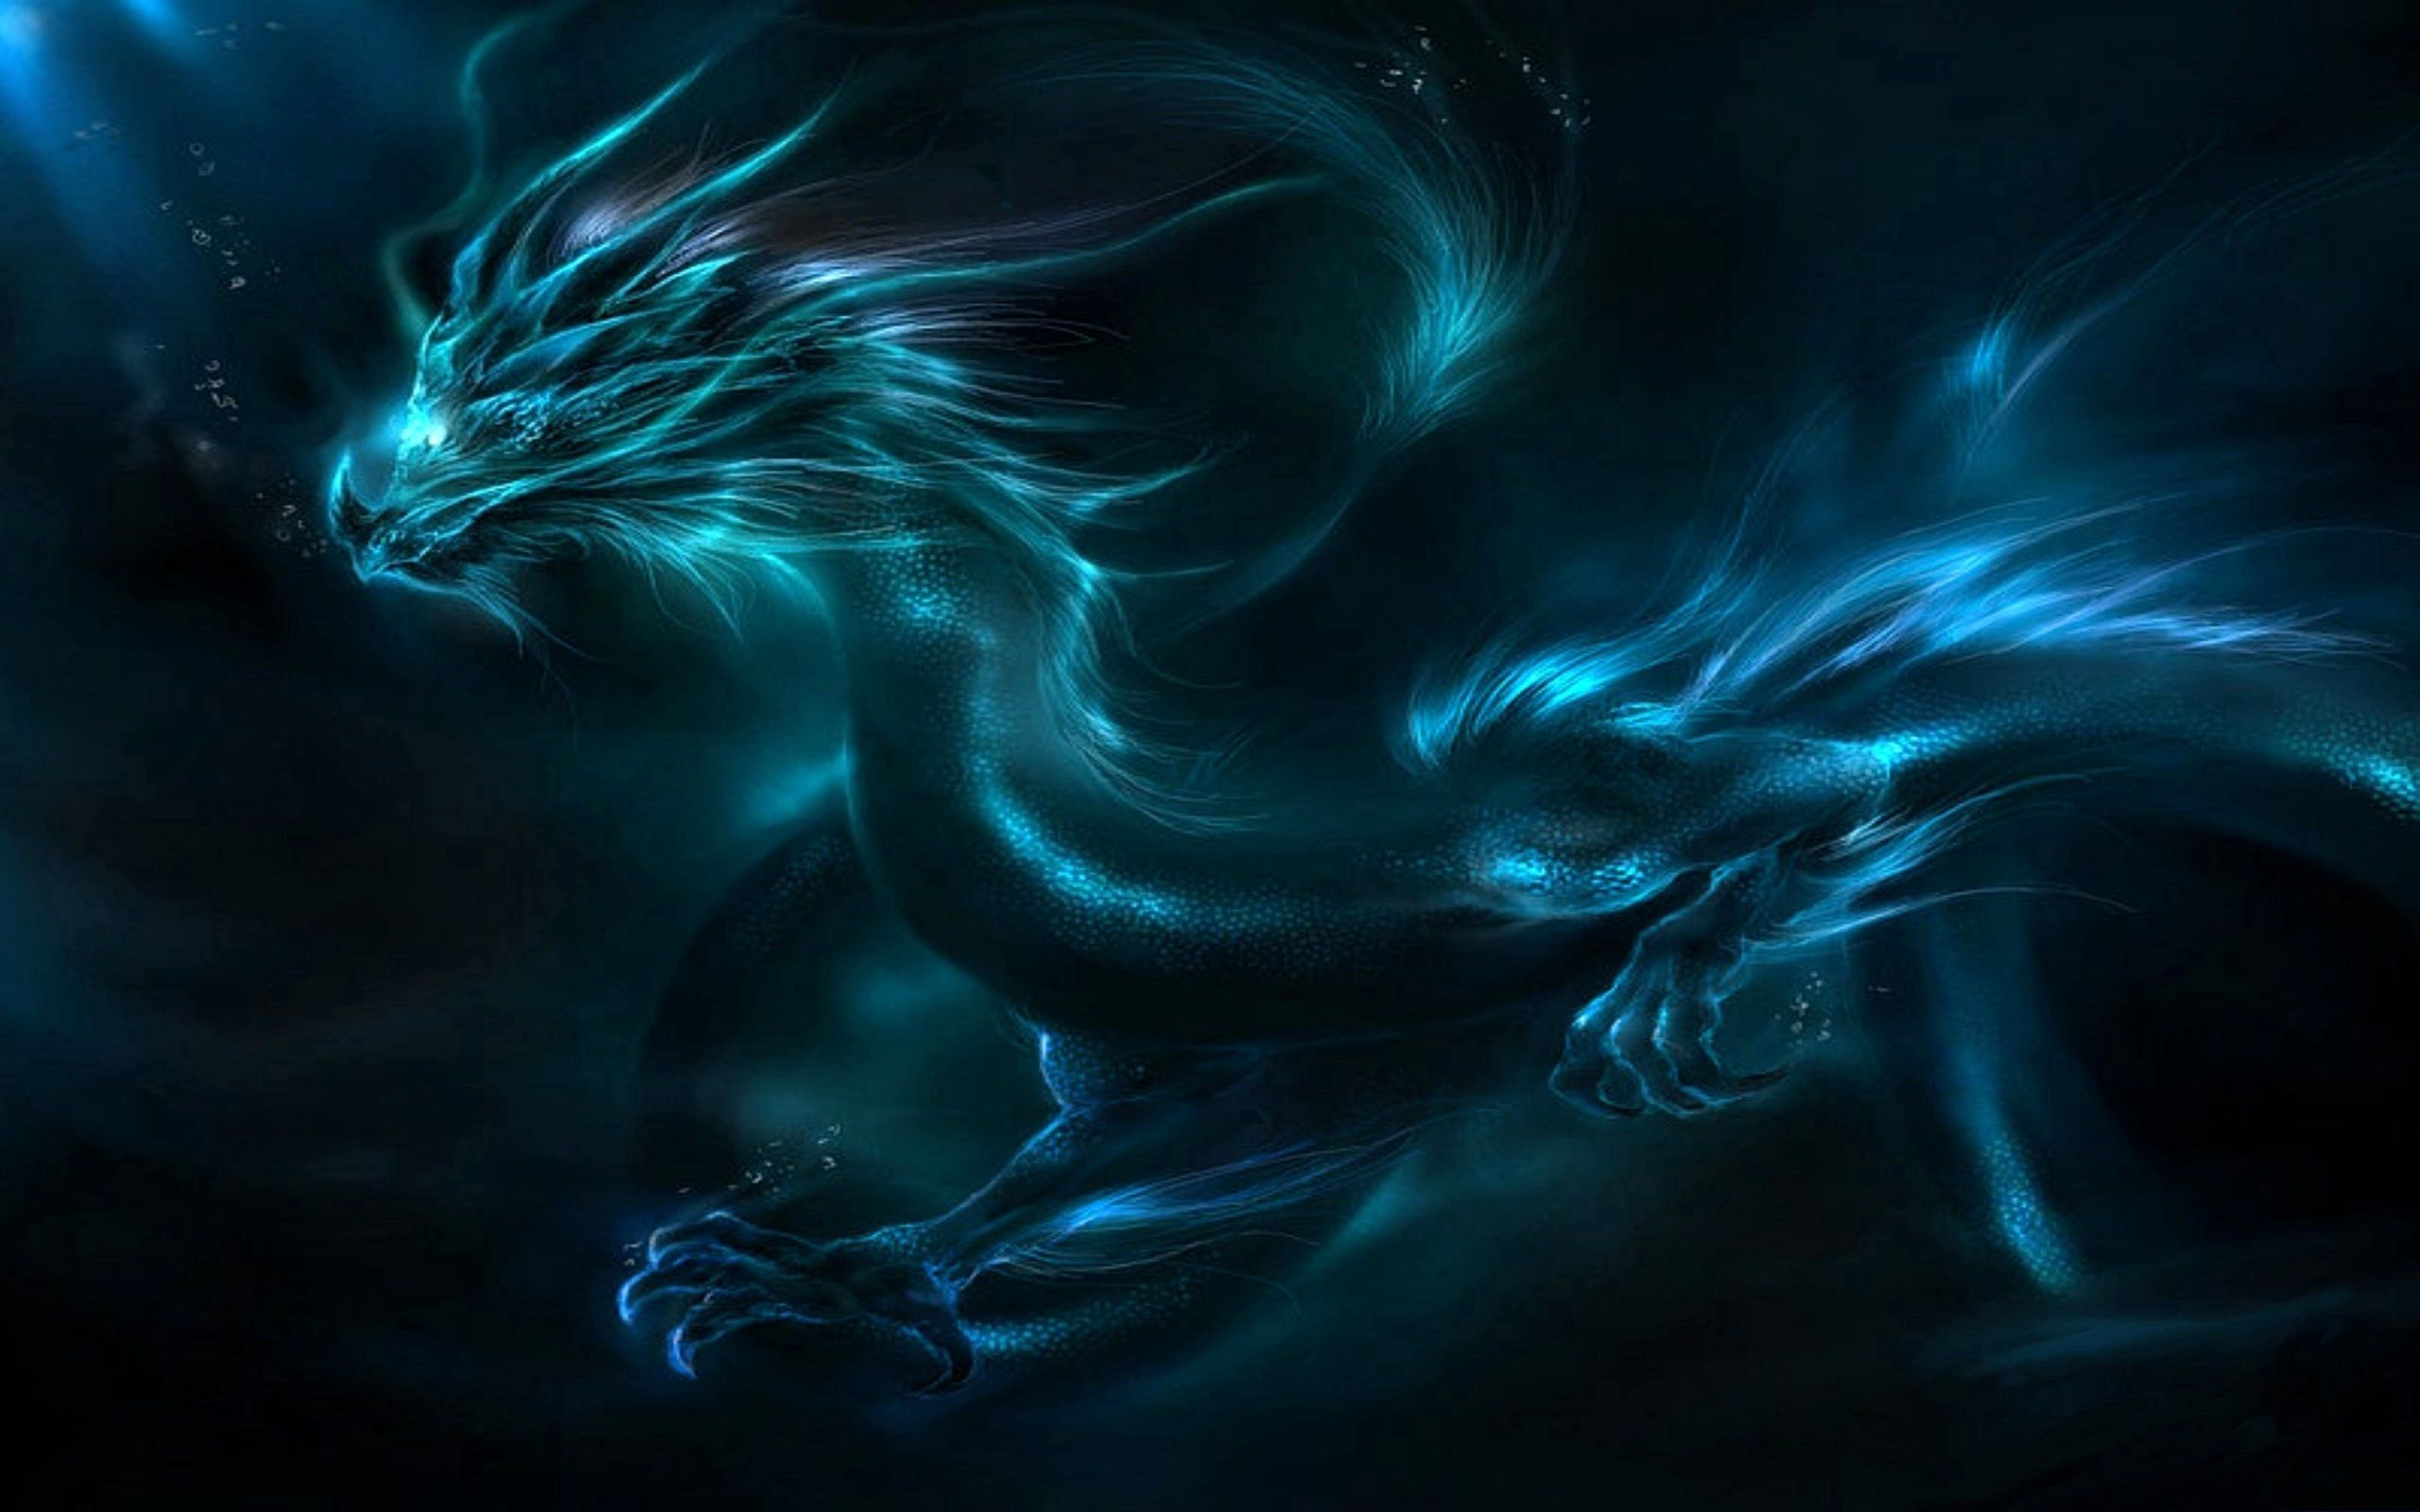 81486 download wallpaper Abstract, Dragon, Pattern, Neon, Shadow screensavers and pictures for free